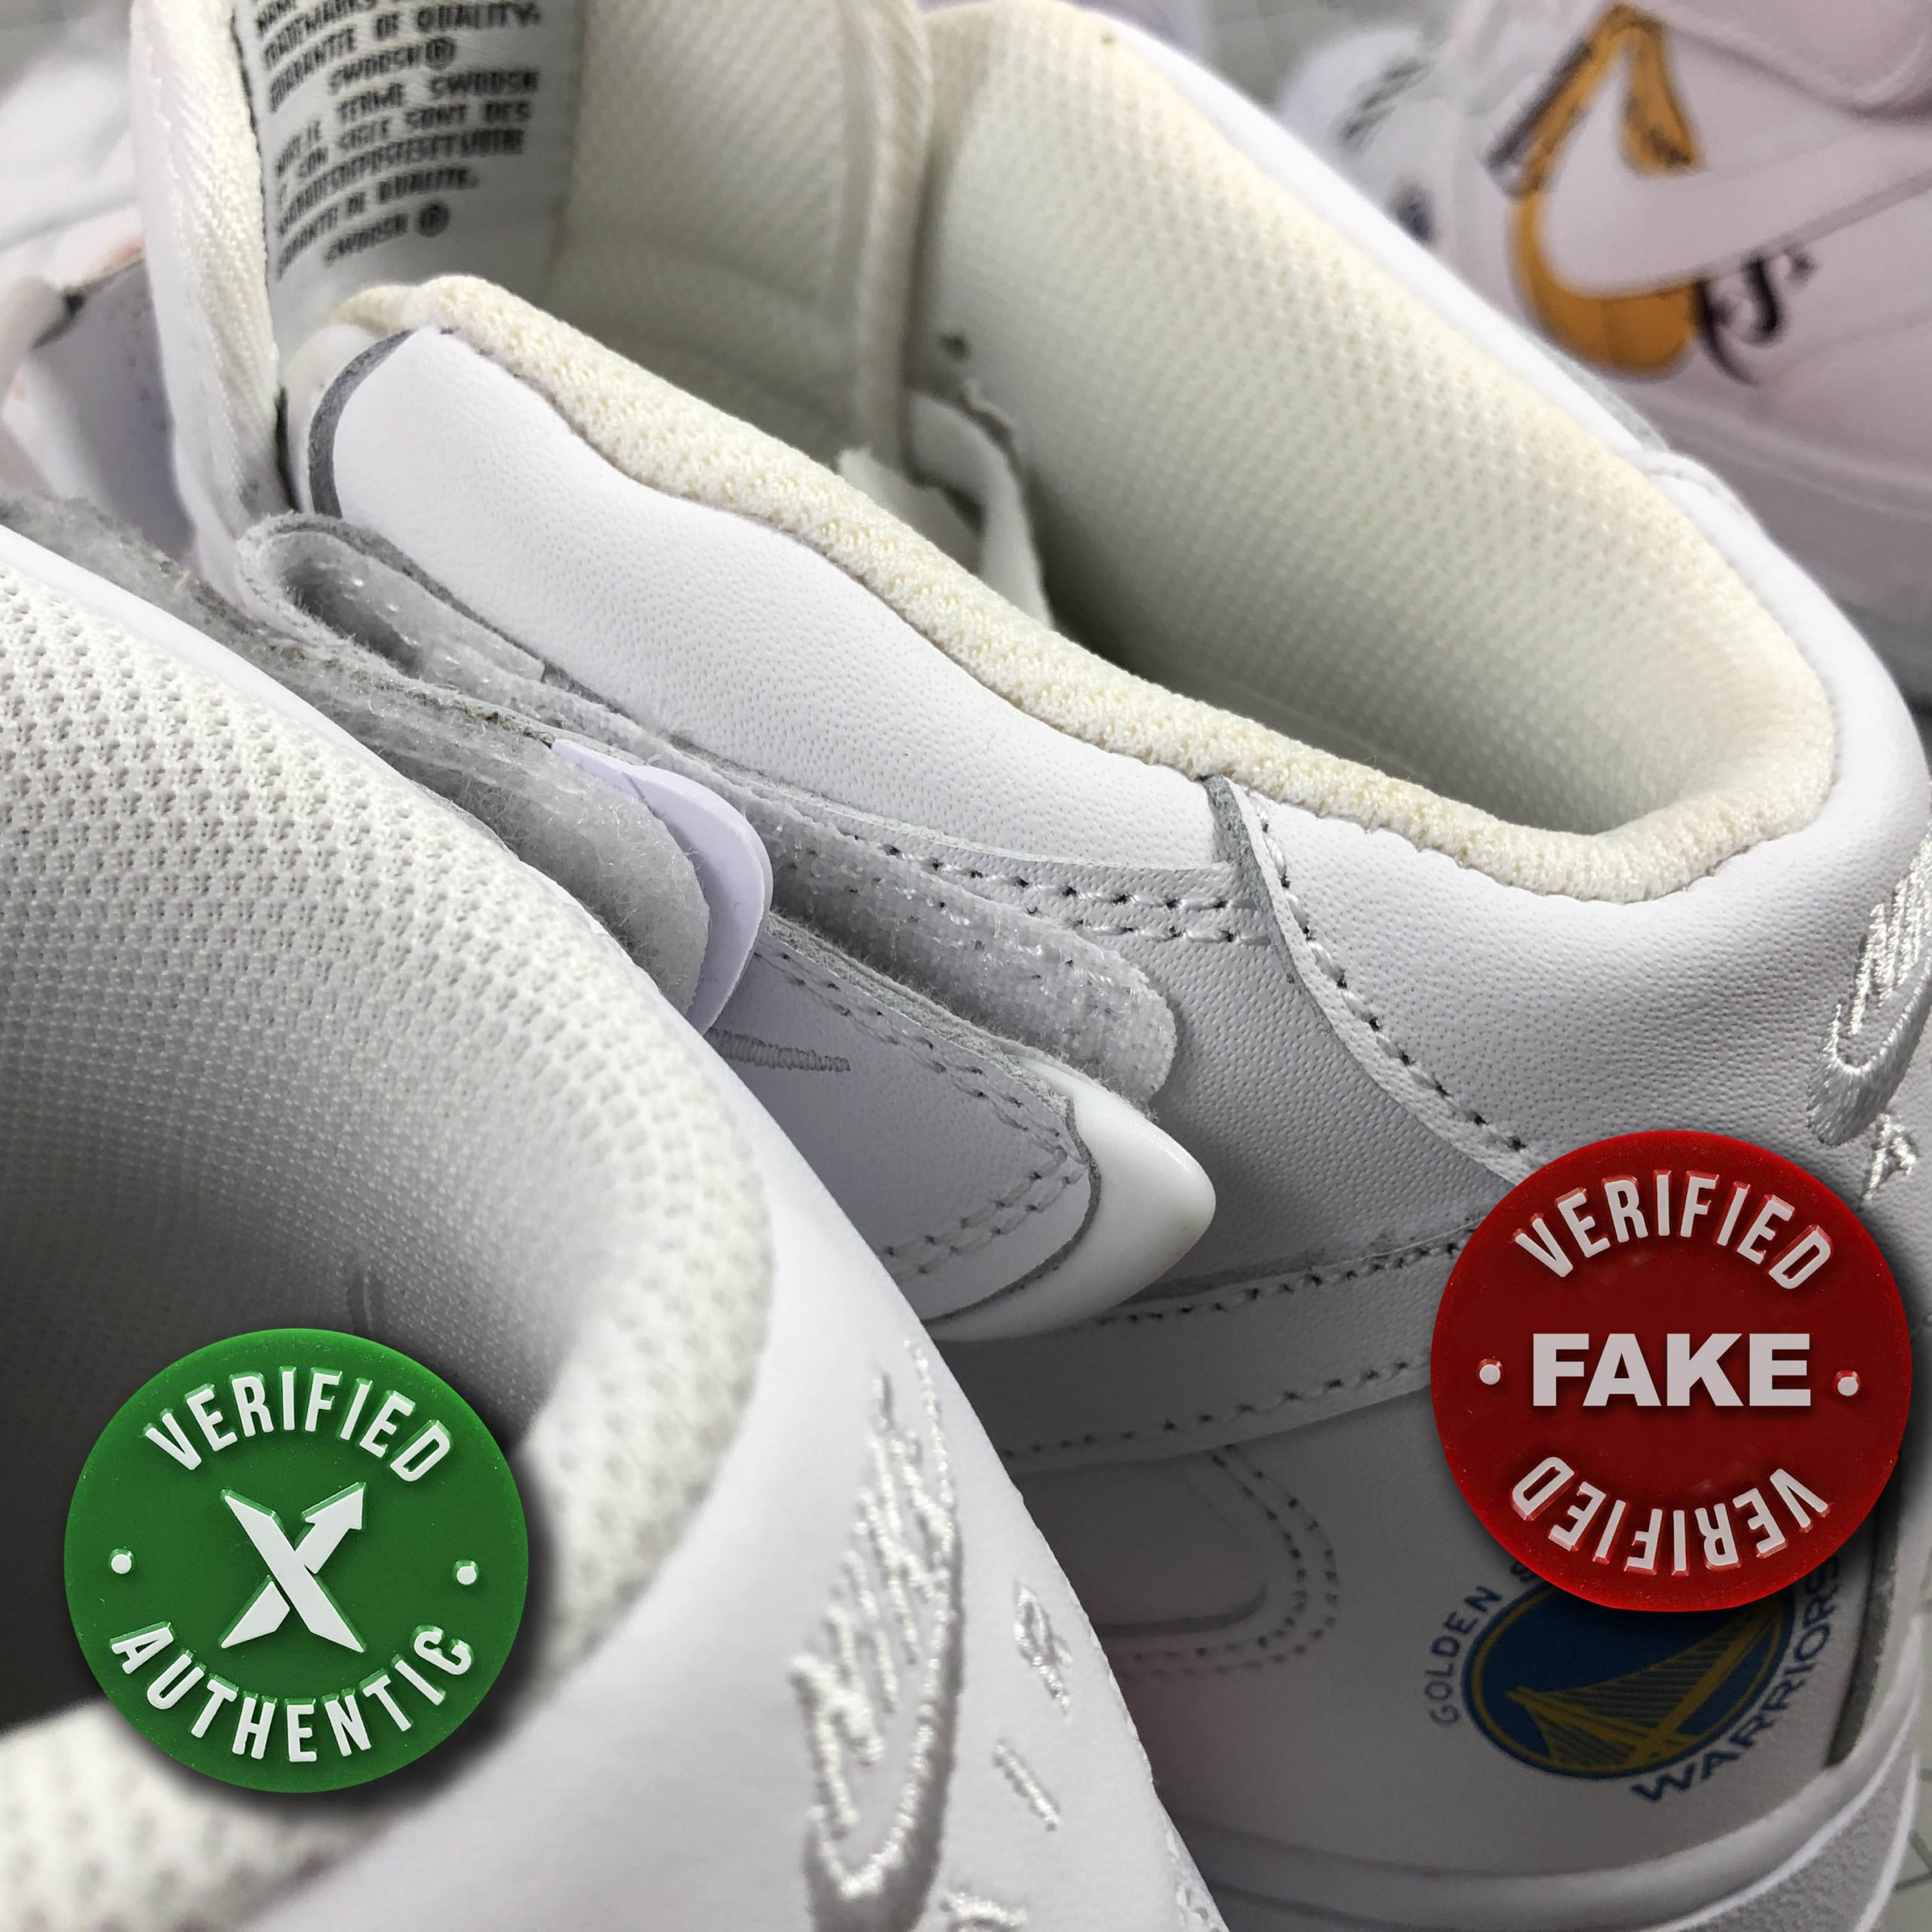 Nike-Fake-Real-Top-Collar - How Shoes